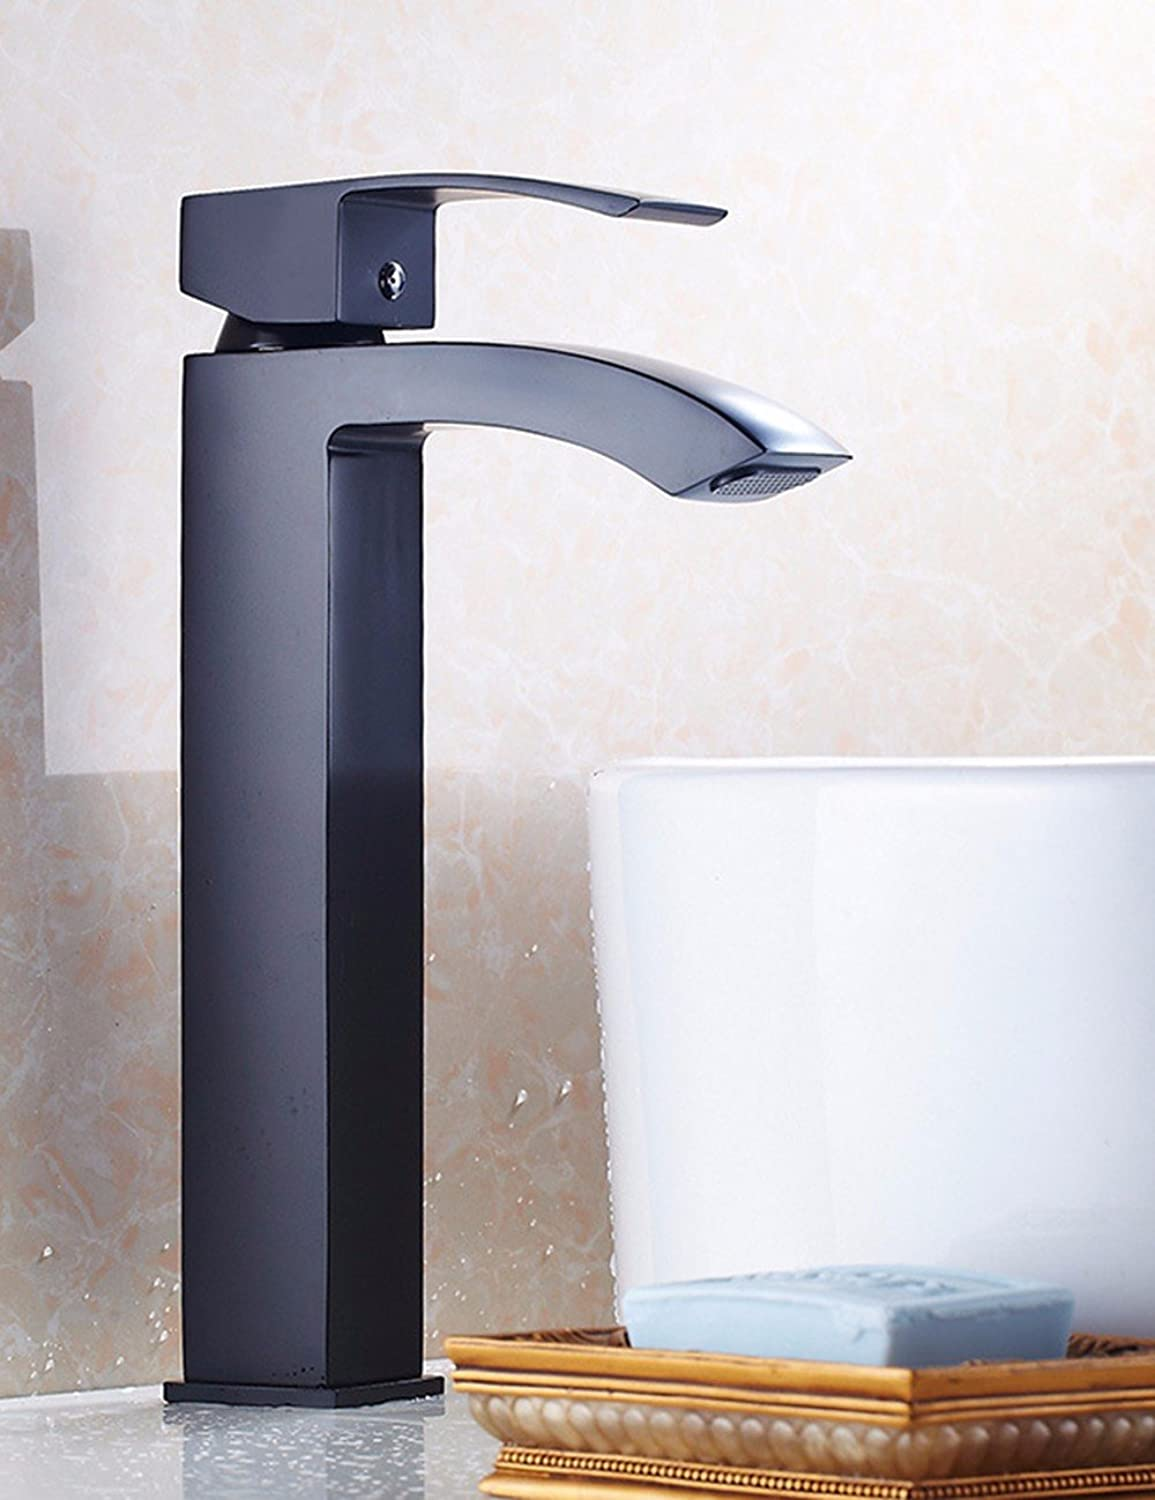 Hlluya Professional Sink Mixer Tap Kitchen Faucet High basin sickle faucet, Bathroom Washbasin Faucet, hot & cold water faucet